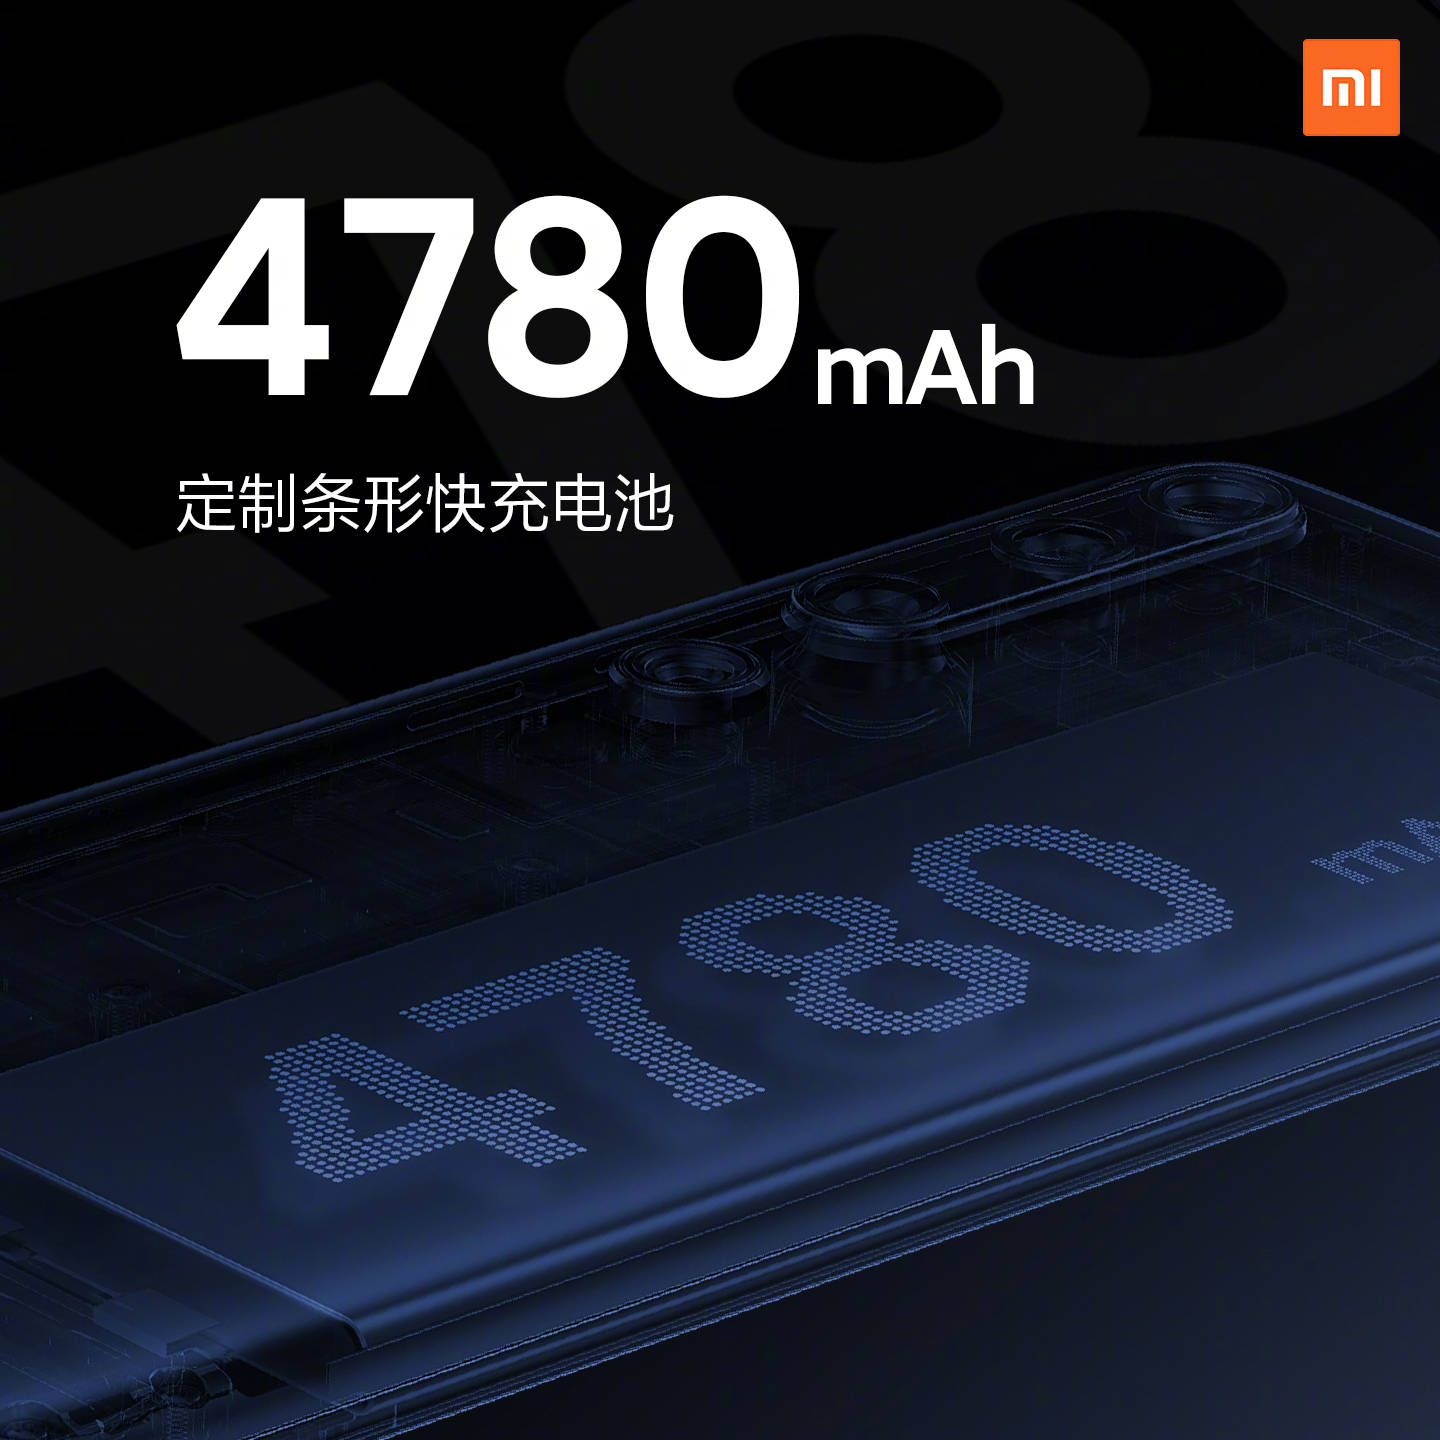 New Xiaomi Mi 10 and Mi 10 Pro, features, price, specifications and release date. Xiaomi Addicted News